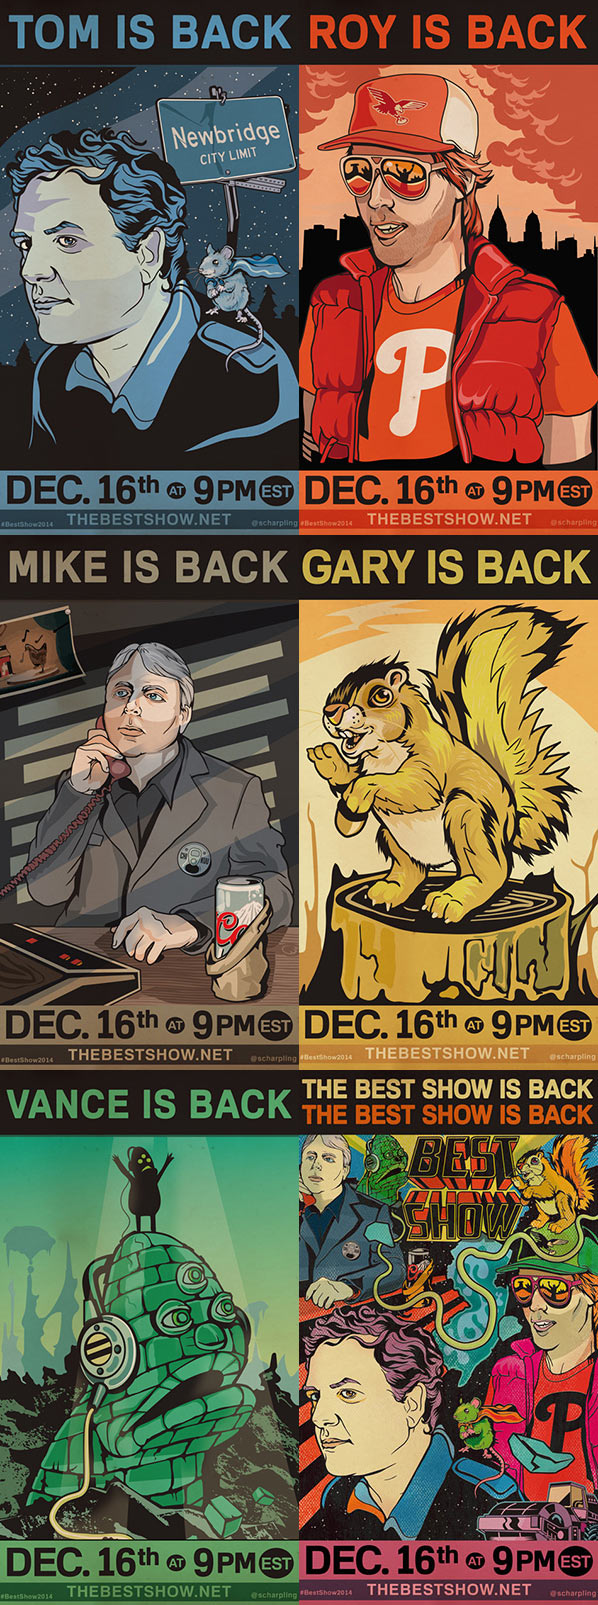 Best Show Is Back - 12/16/14 9PM